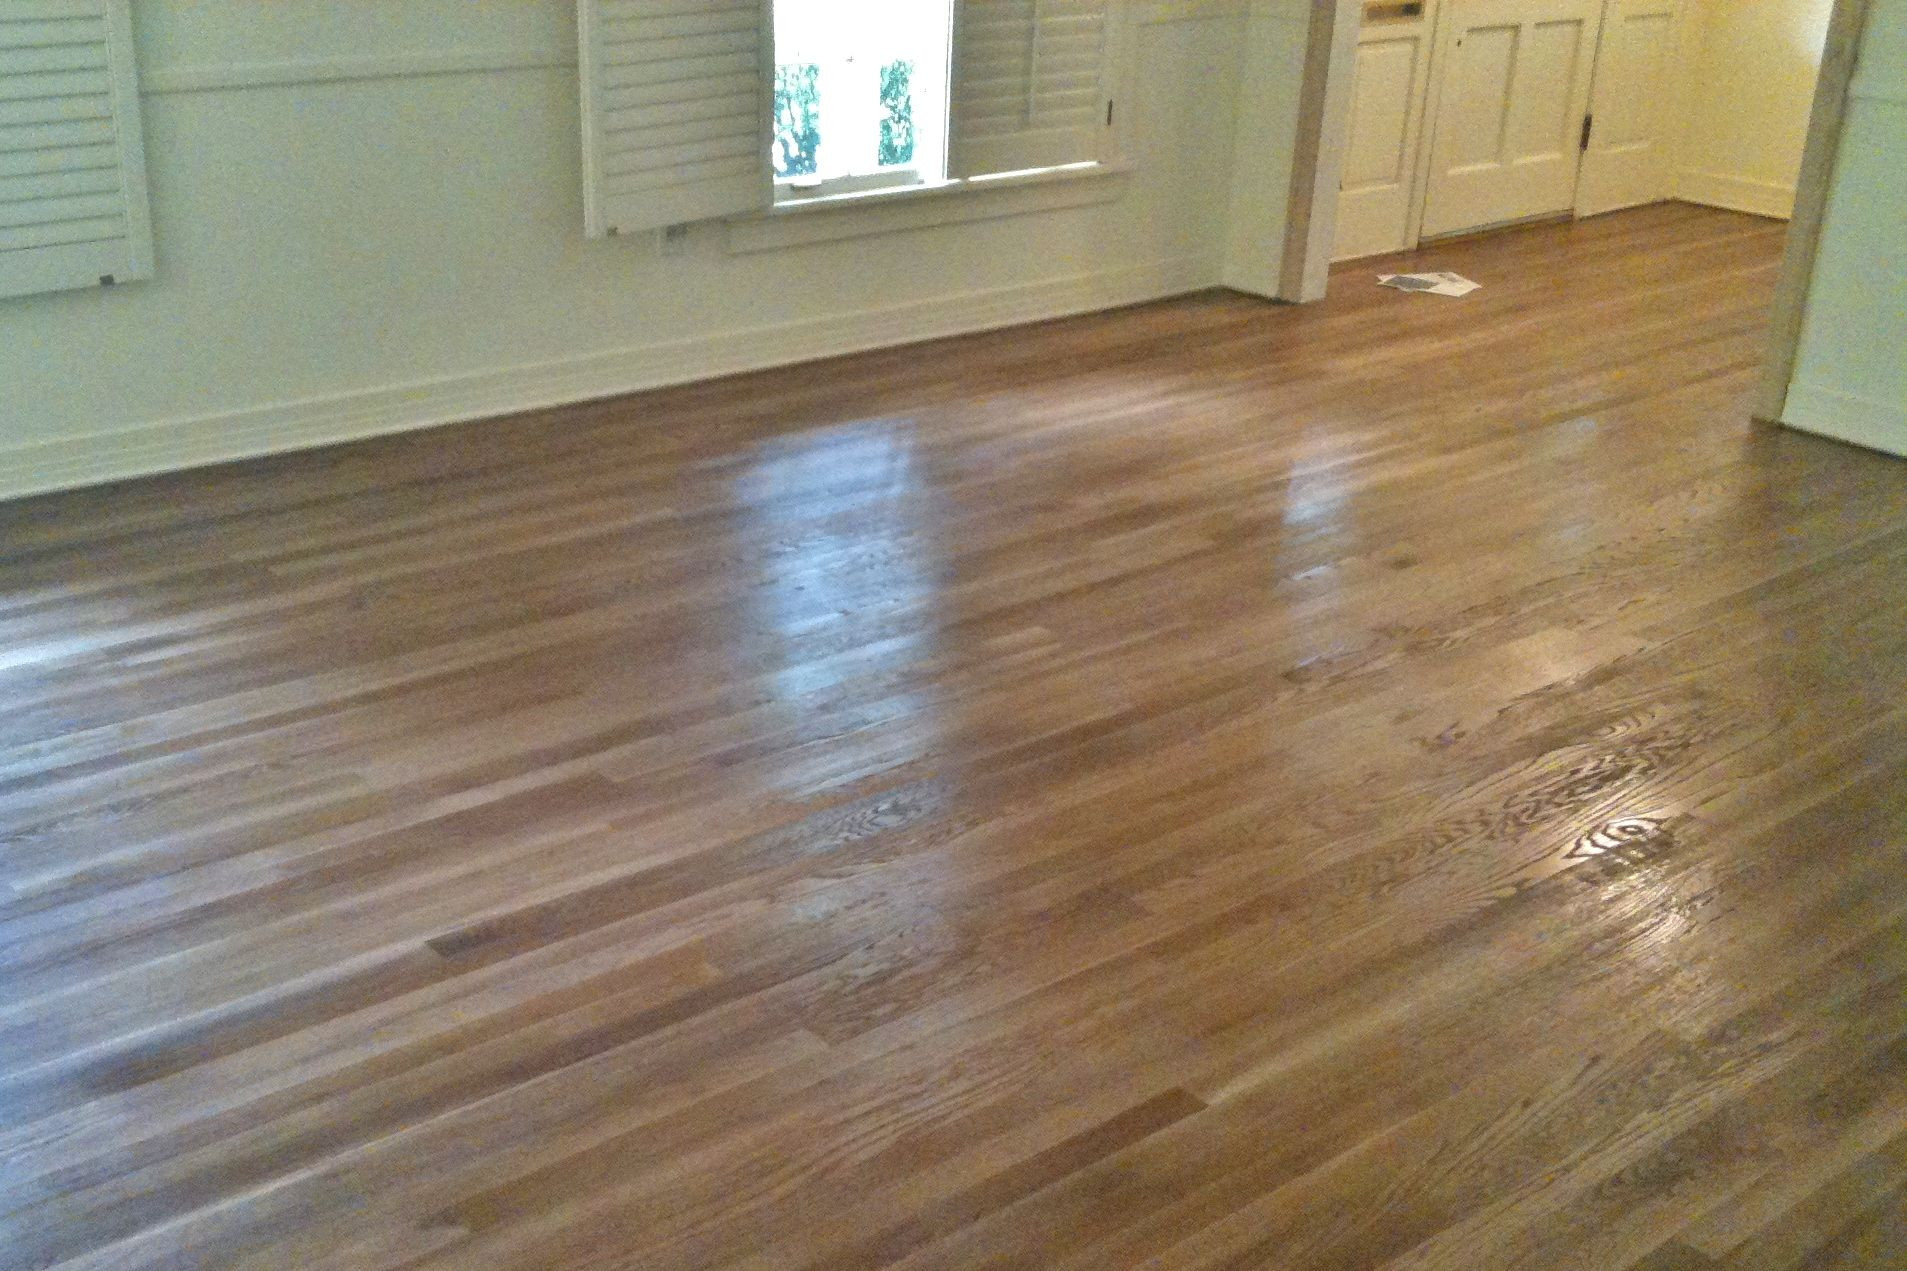 hardwood floor refinishing littleton co of oak meet special walnut home design pinterest flooring pertaining to minwax special walnut stain on oak hardwood floors walnut hardwood flooring refinishing hardwood